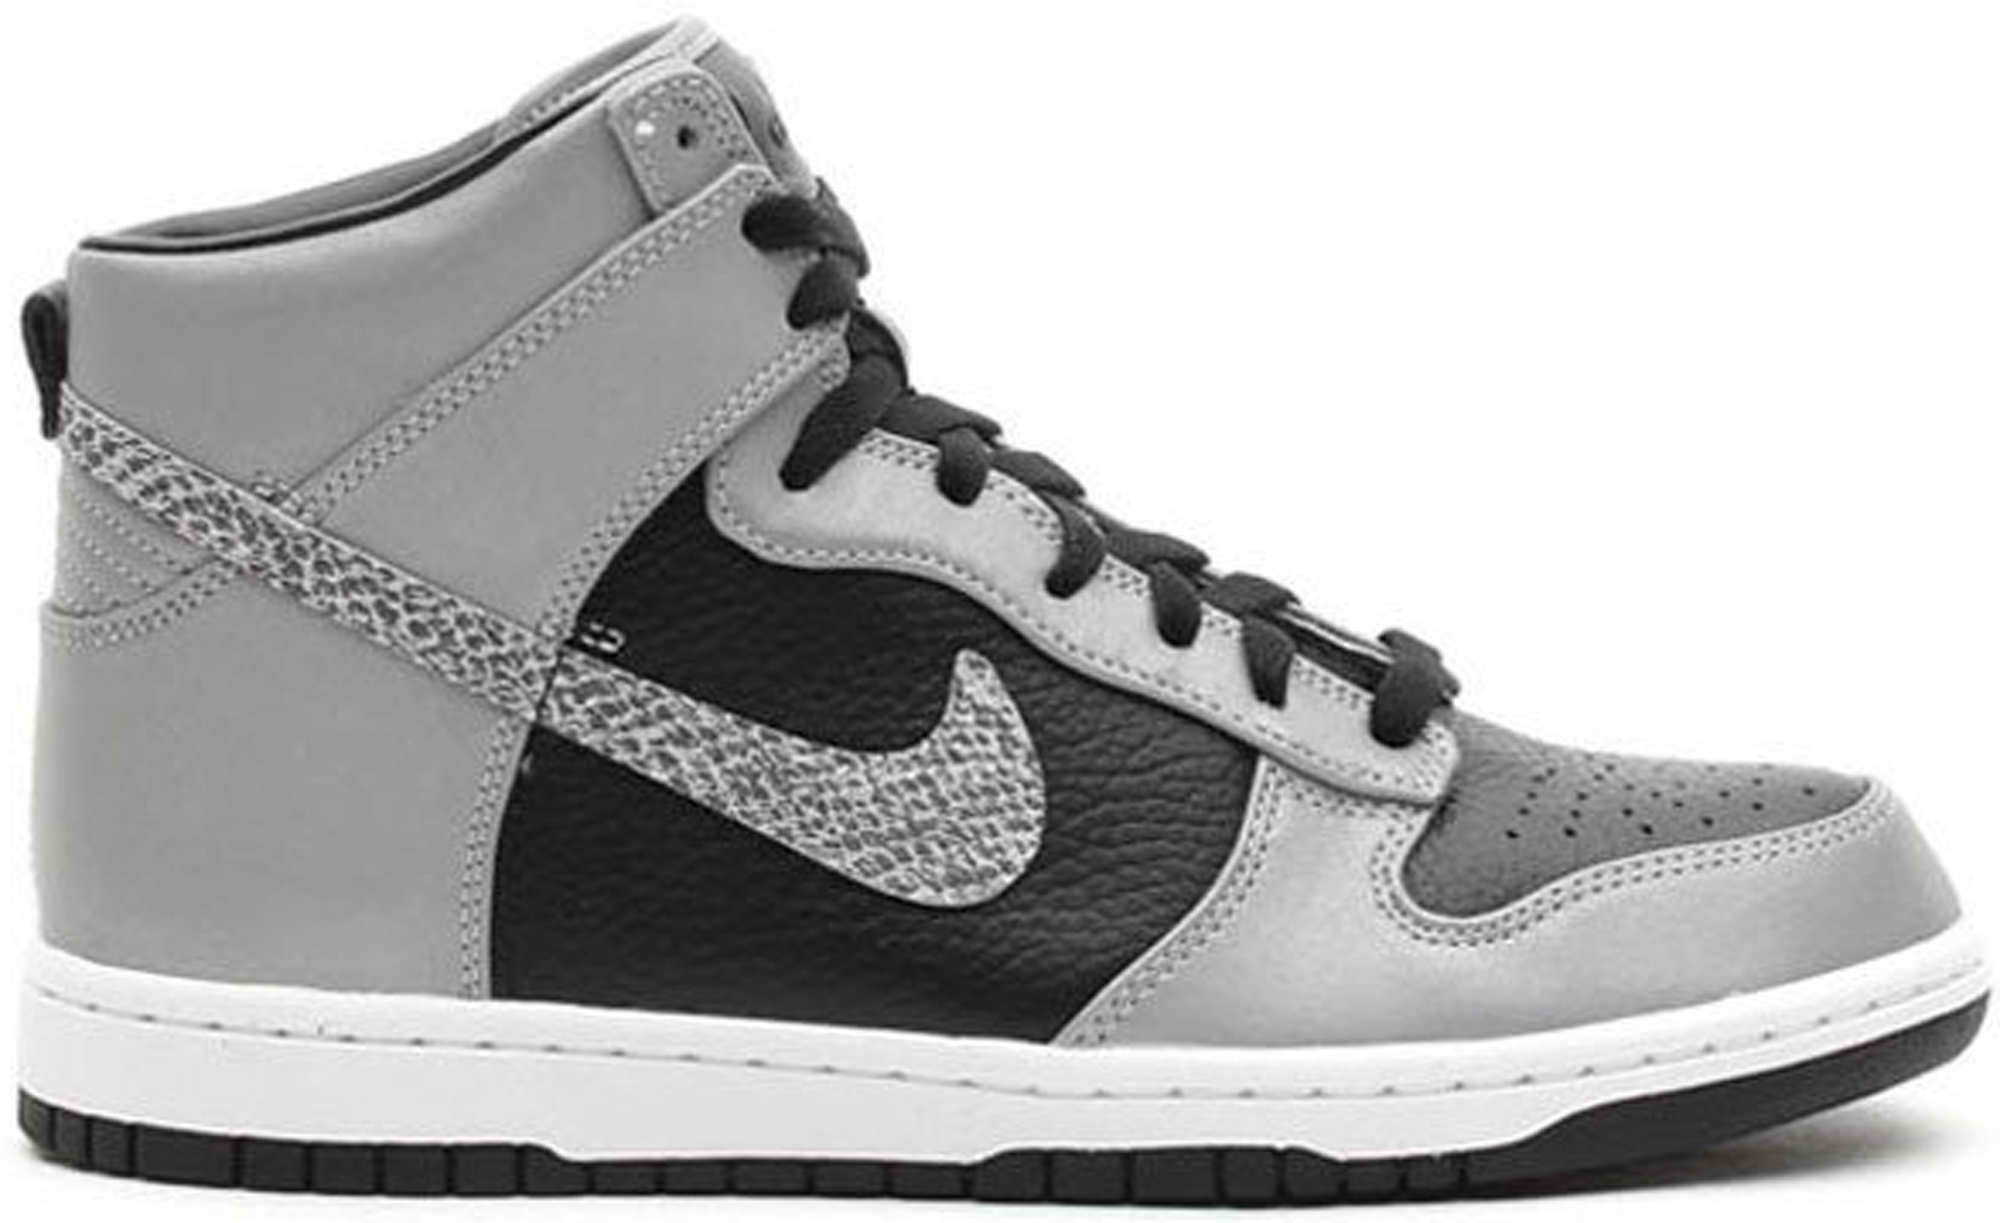 59507d611c9539 ... where can i buy nike dunk high 3m snake 07ef1 125dd